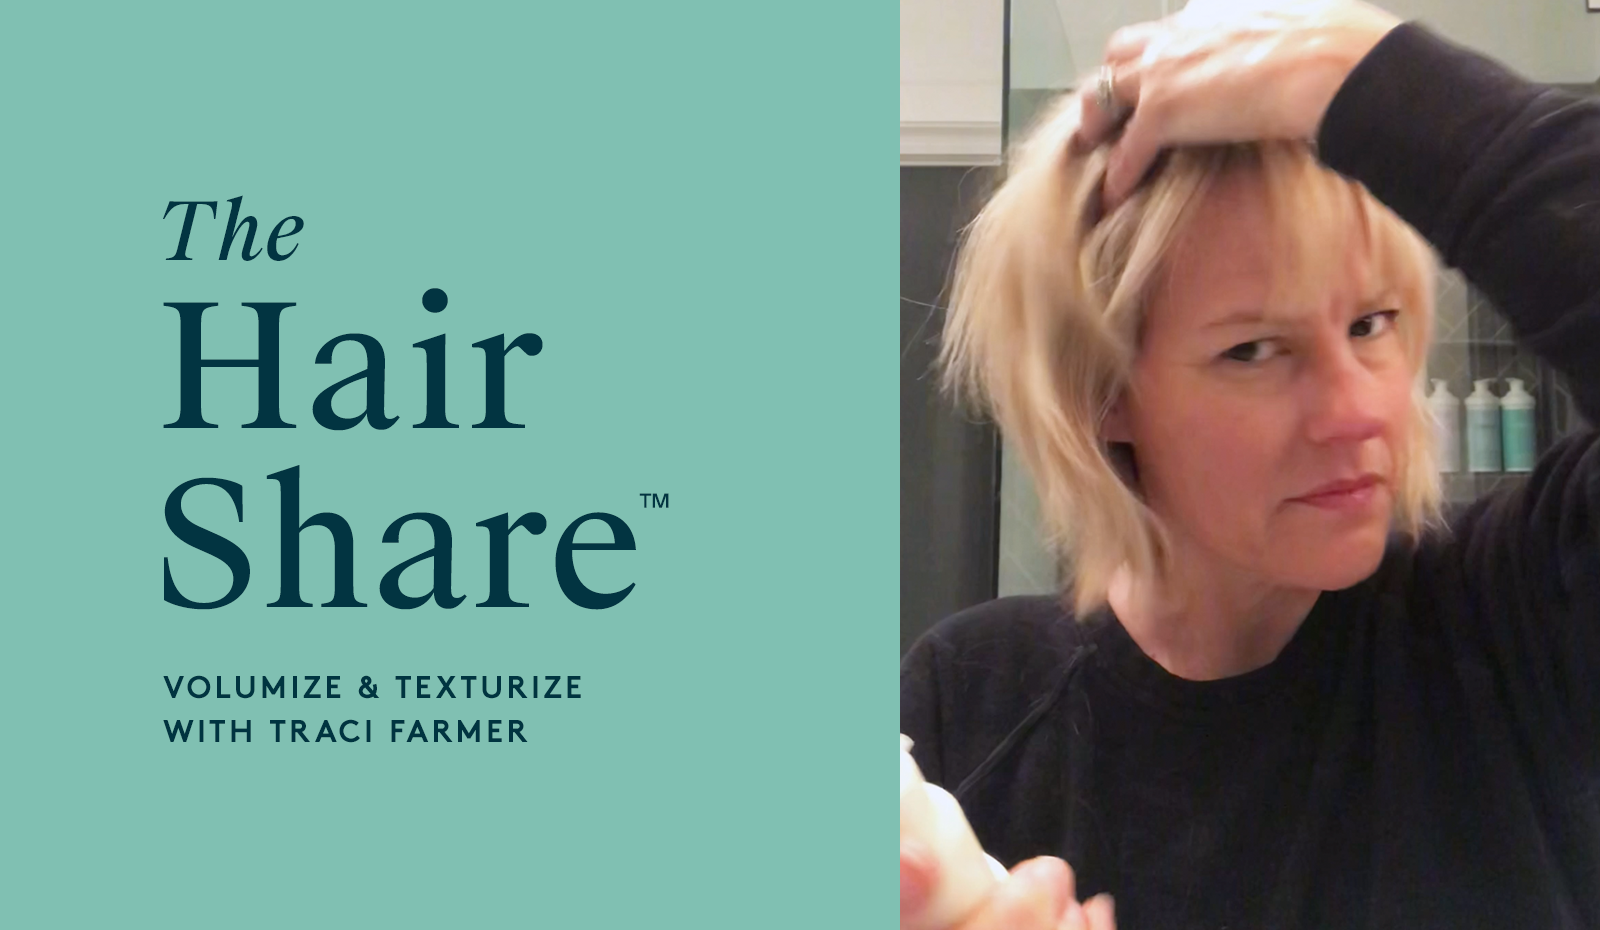 The Hair Share™: Volumize & Texturize with Traci Farmer